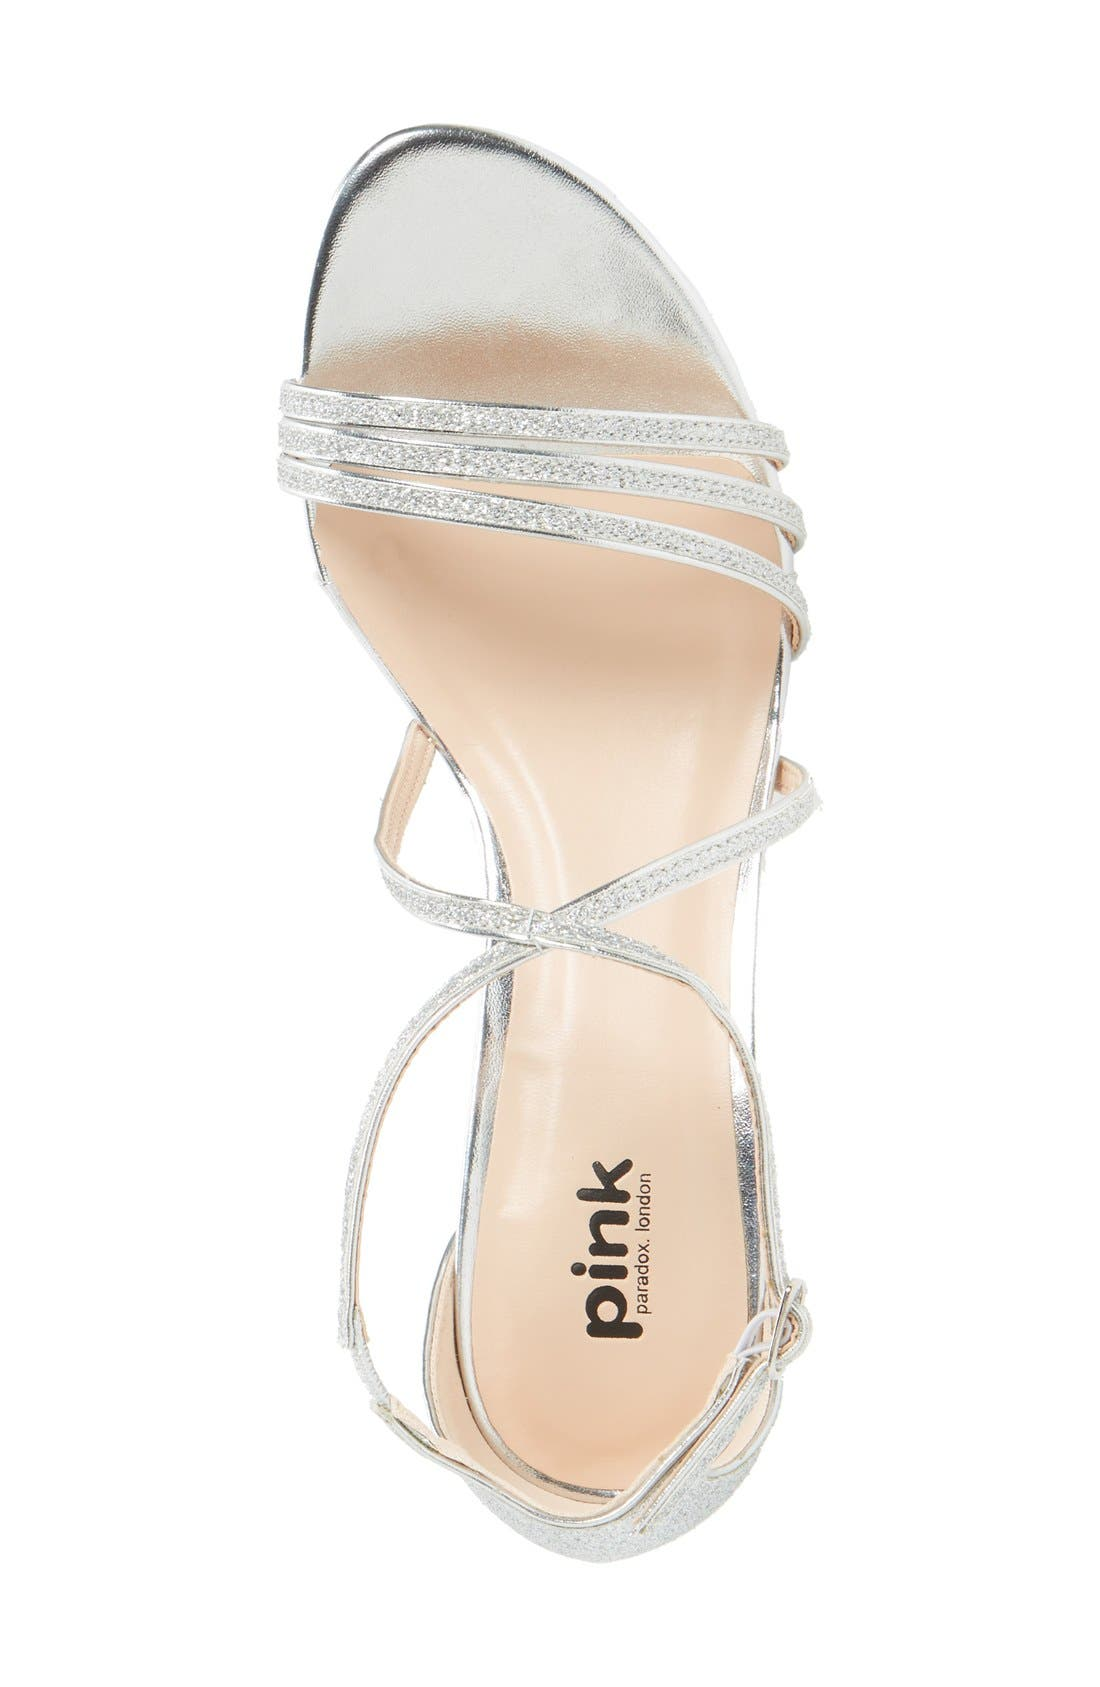 PARADOX LONDON PINK,                             'Isla' Glitter Sandal,                             Alternate thumbnail 3, color,                             040